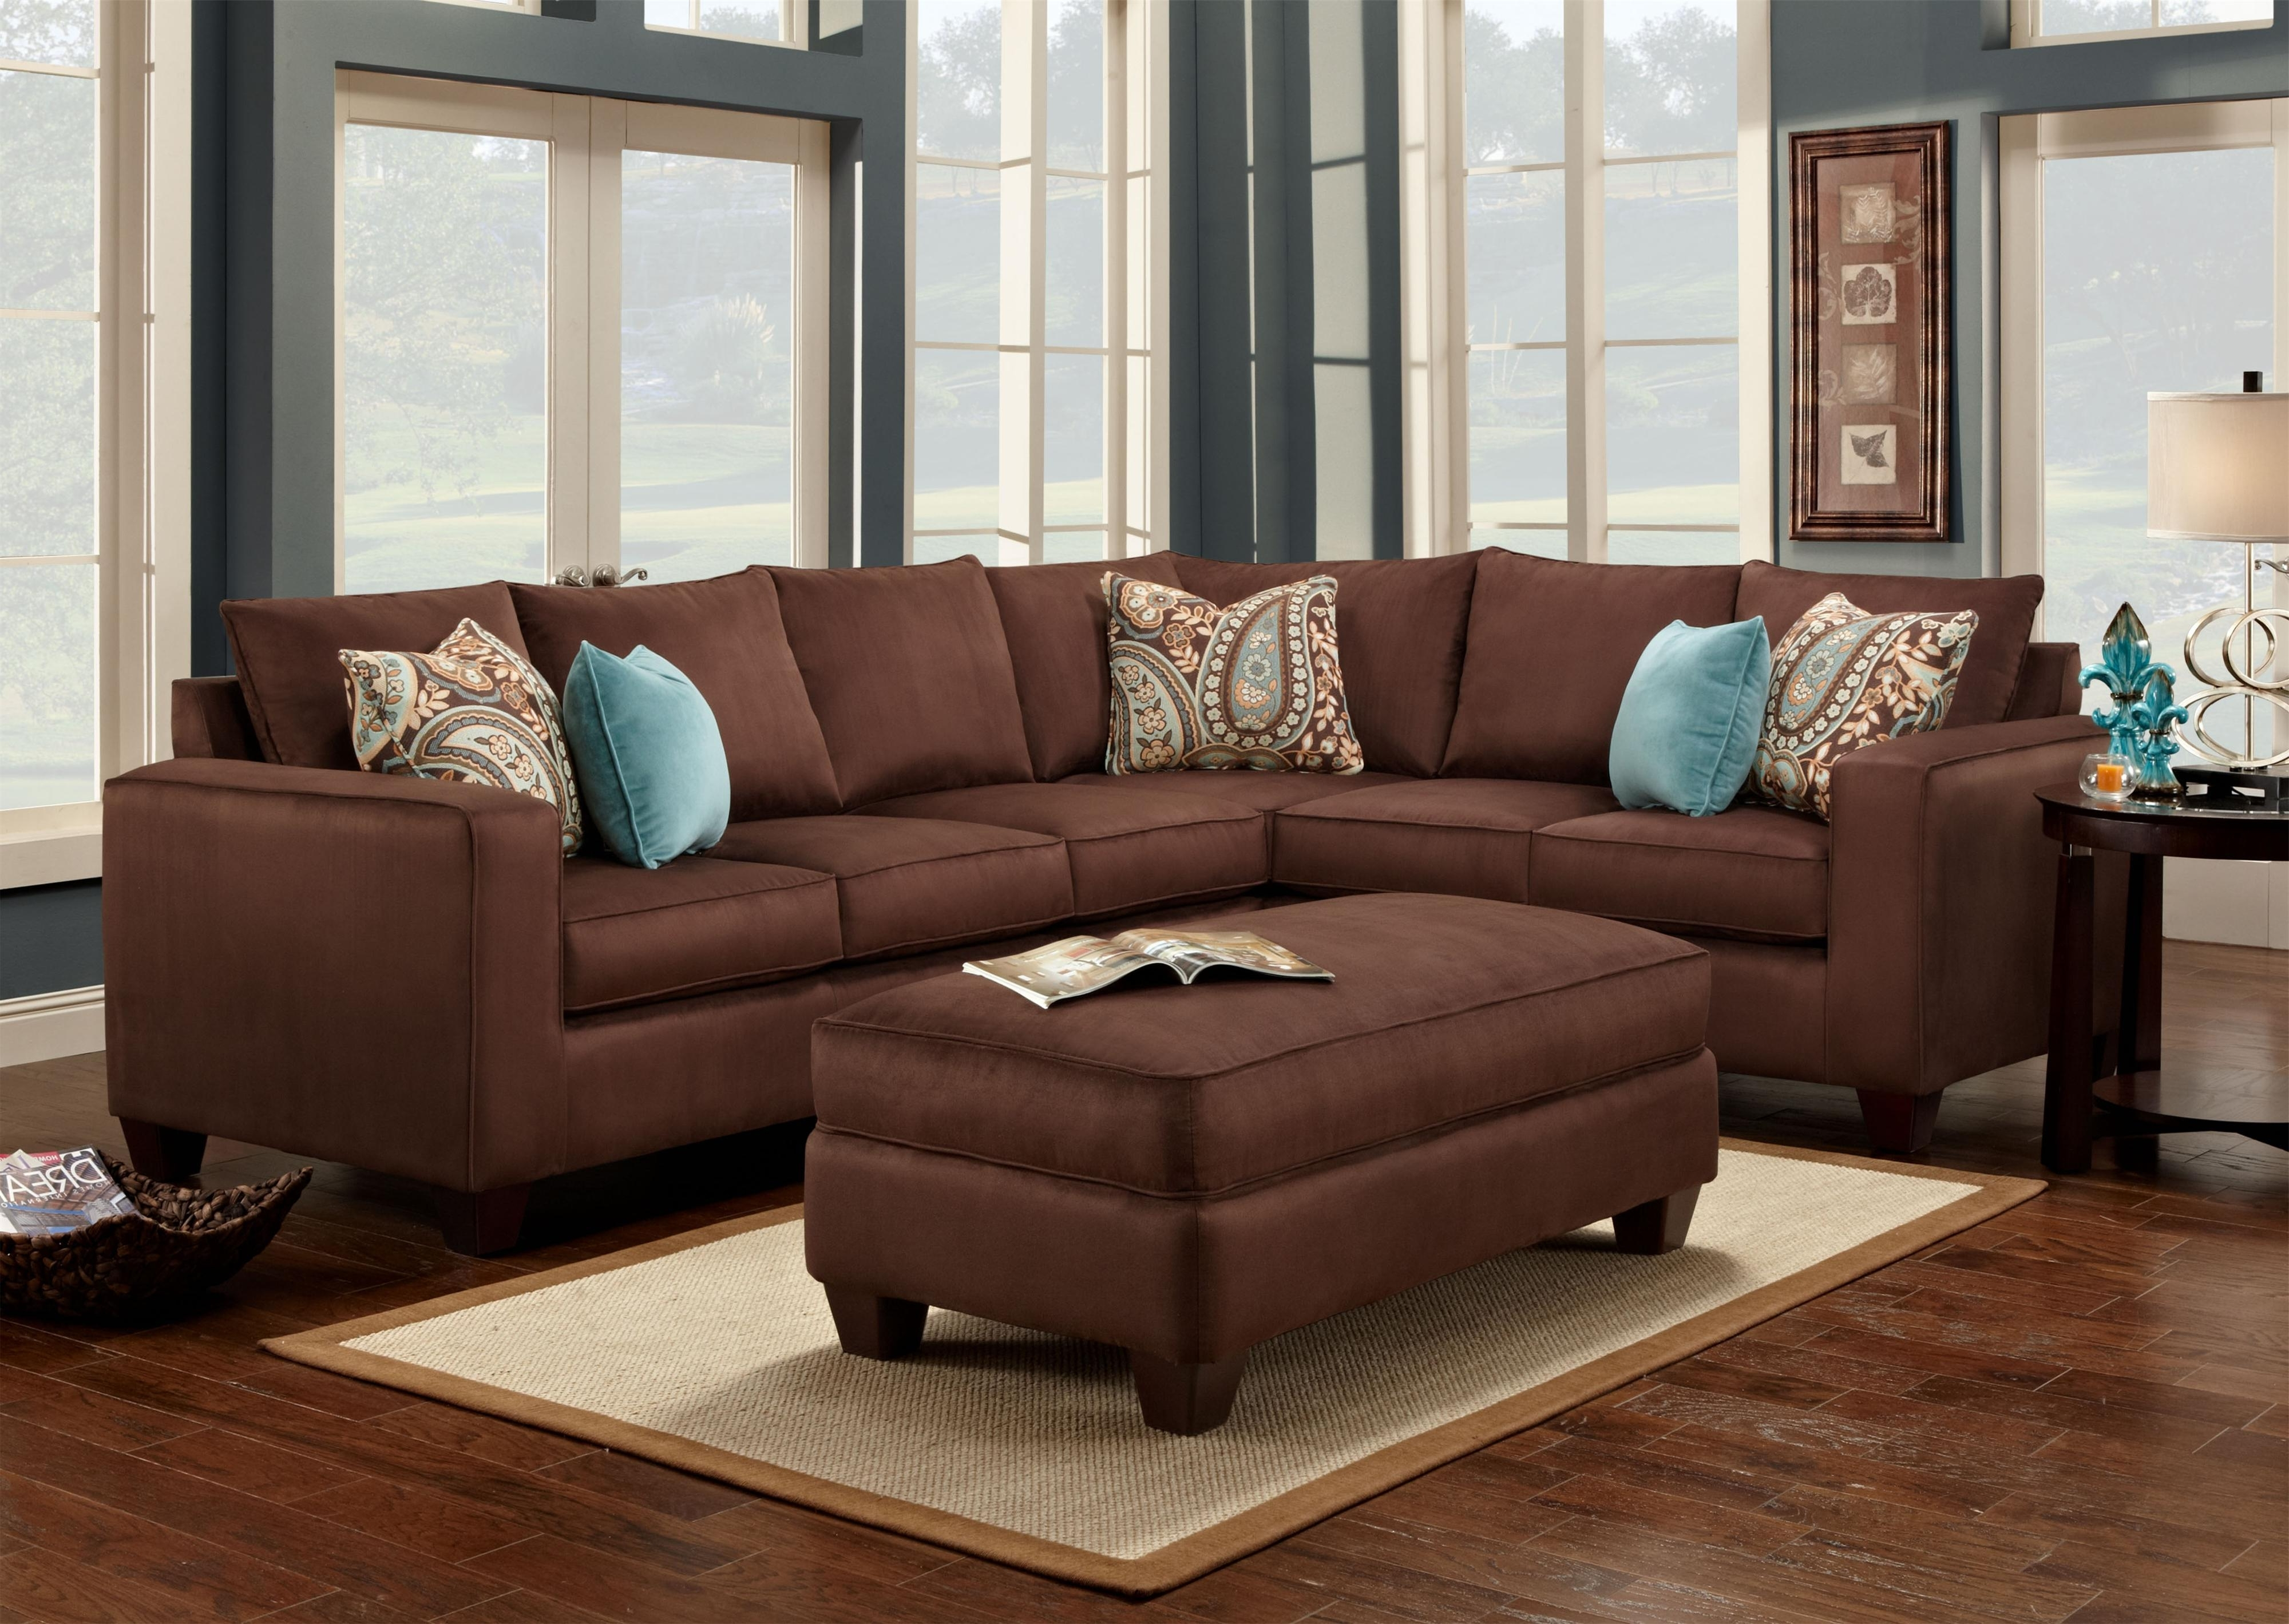 Popular Brown Sofa Chairs Within Pictures Of Living Rooms With Brown Sofas Dark Brown Leather Sofa (View 3 of 15)